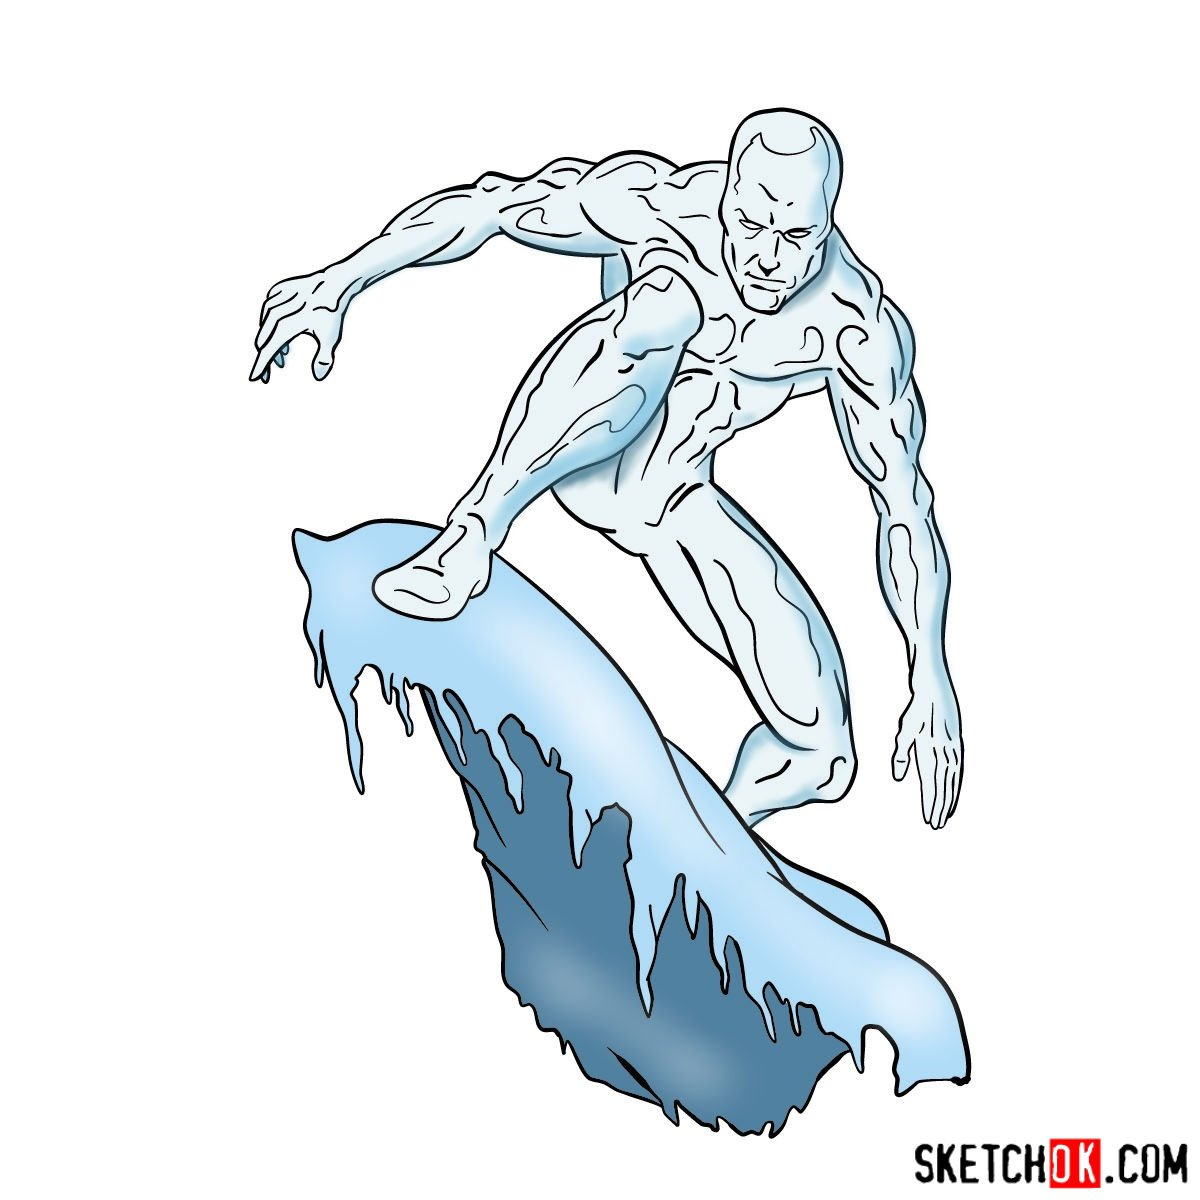 How to draw Iceman - step by step drawing tutorial - coloring